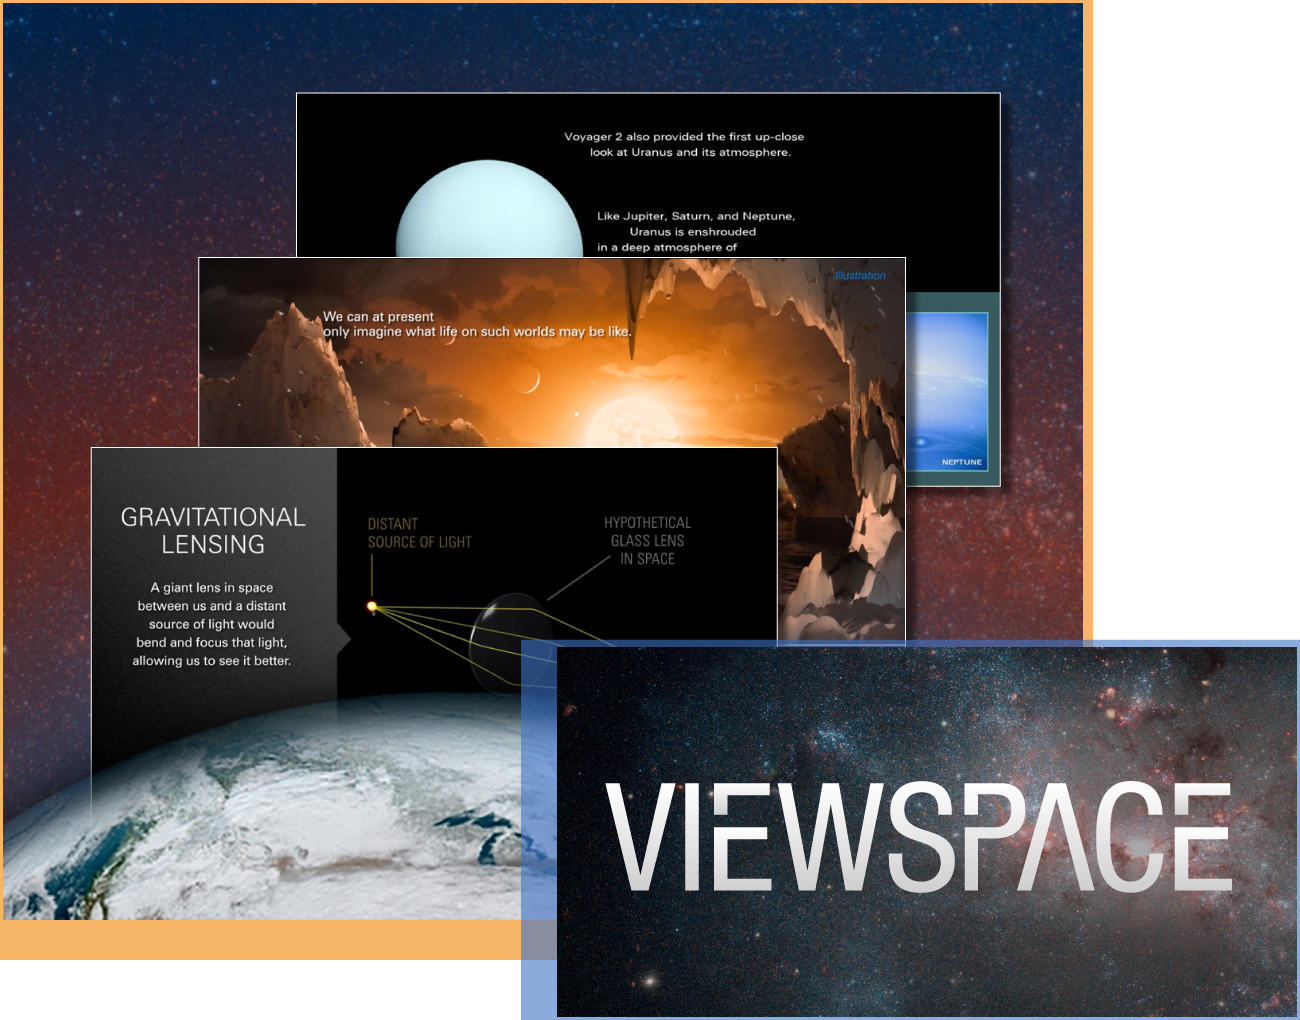 - ViewSpace is a free, web-based collection of dozens of digital interactives and hundreds of videos highlighting the latest developments in astronomy and Earth science.ViewSpace gives you the opportunity to explore our planet, solar system, galaxy, and universe. Provided free with the support of NASA, ViewSpace is developed by a team of scientists, educators, and communication specialists who collaborate to ensure that content is accurate, up-to-date, engaging, relevant, and accessible to a wide audience.Audience: All LearnersWebpage: About the ViewSpace projectApplication: ViewSpace